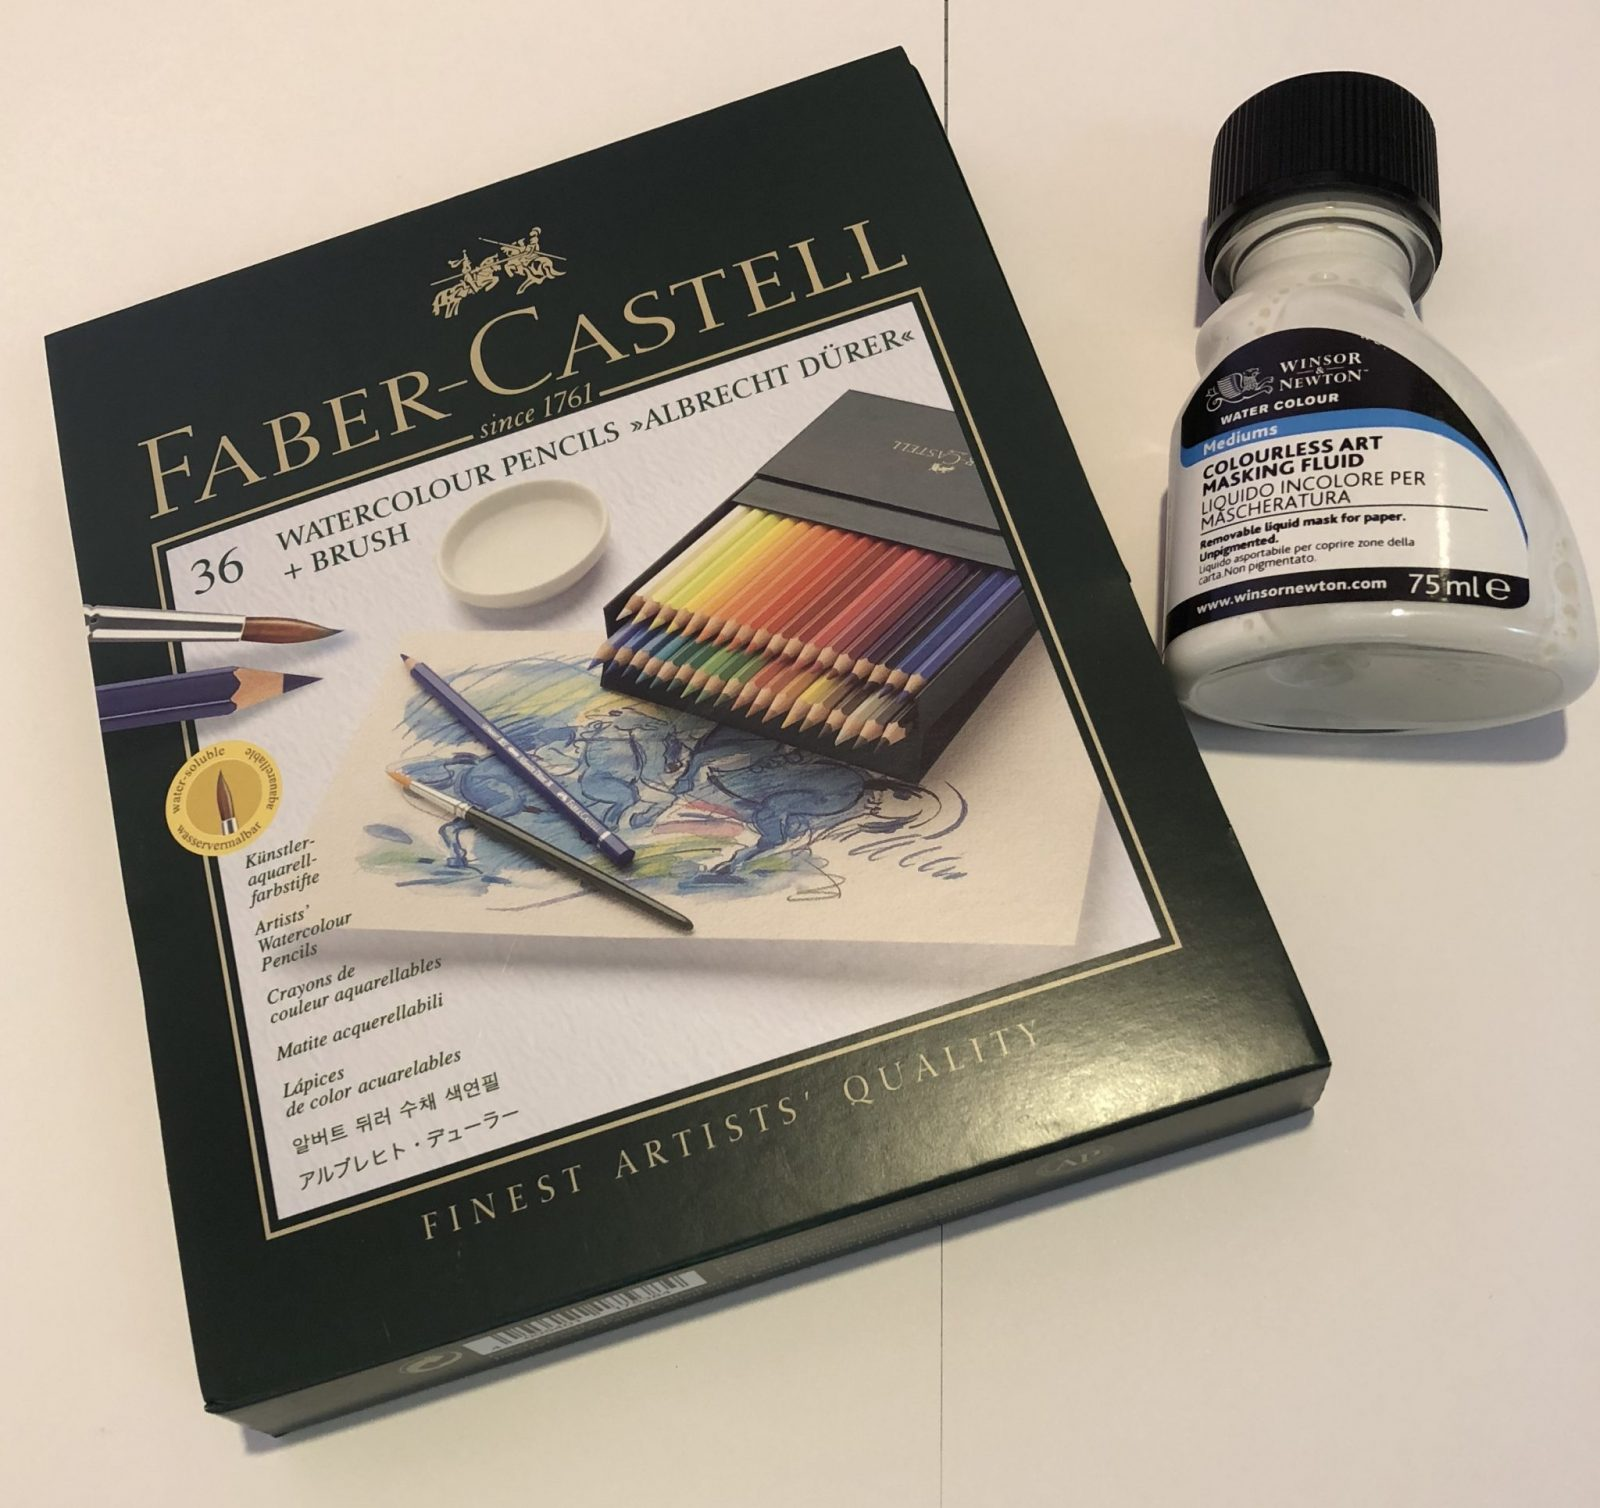 Living Creatively with Fibro | The pack of Faber-Castell Watercolour Pencils and the bottle of Winsor & Newton Masking Fluid